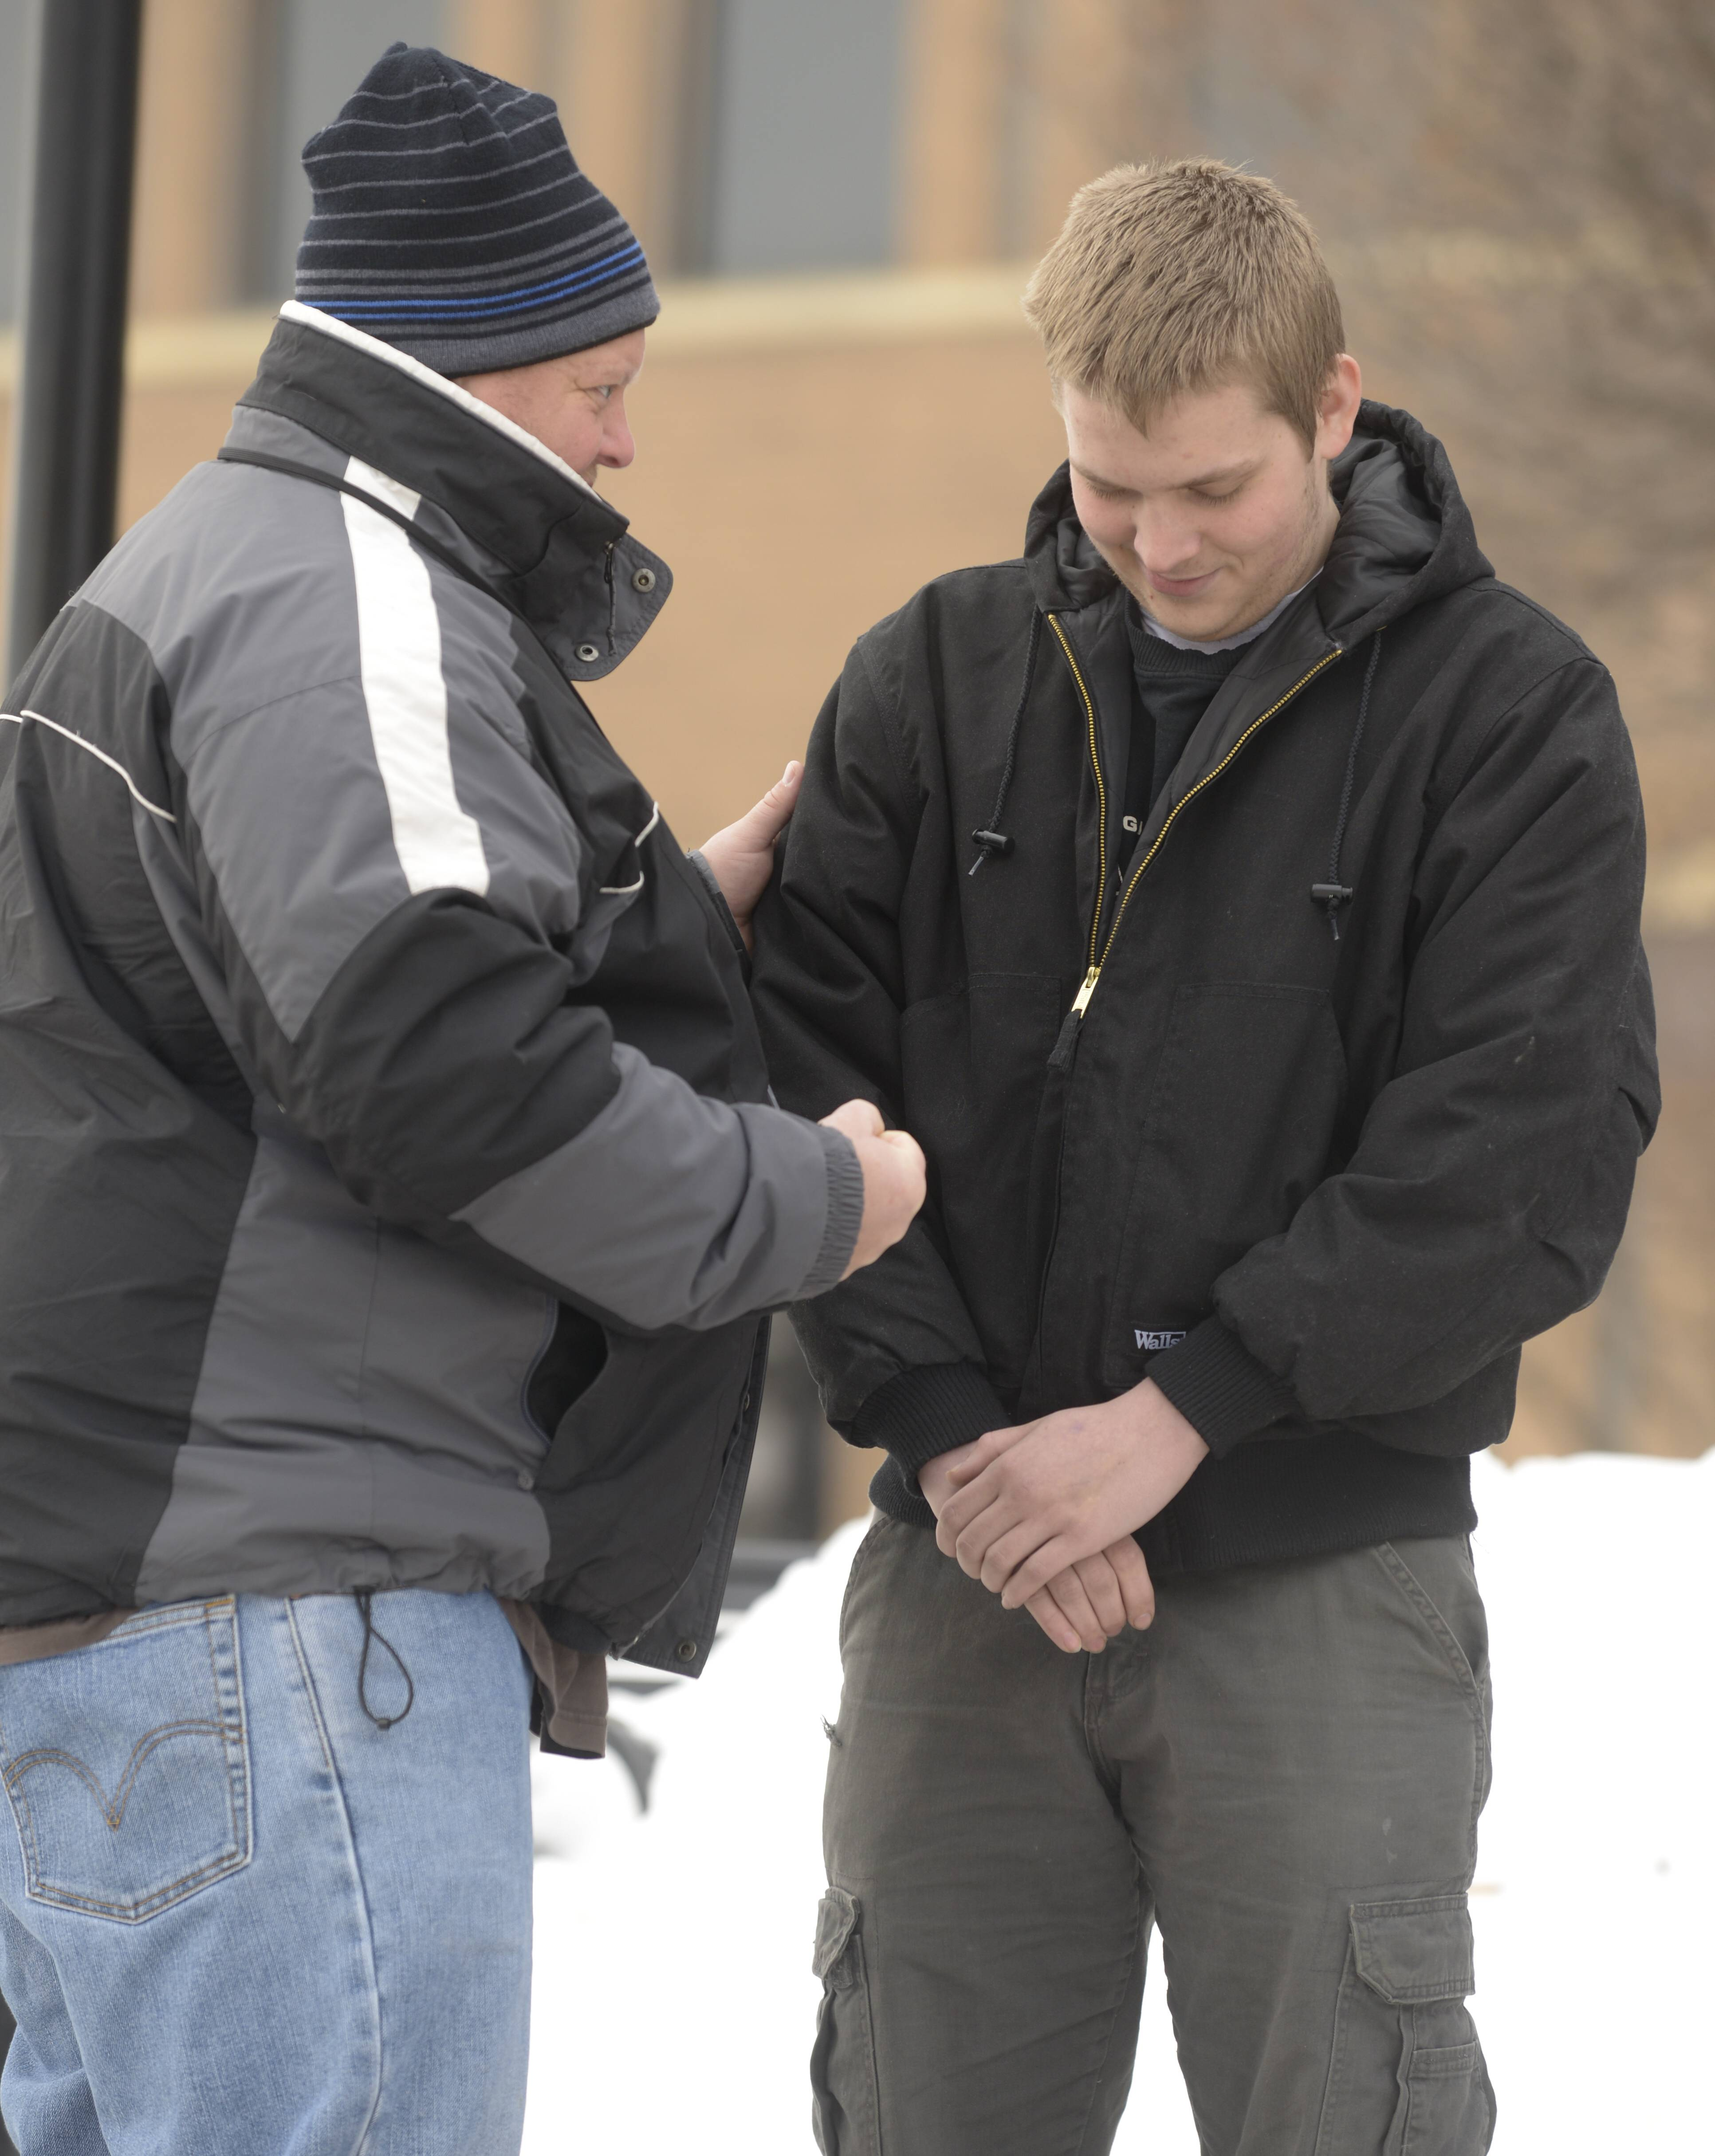 Courtside Ministries DuPage volunteer Ken Schrock prays with Ethan Hartwell, of Elgin, outside the DuPage County courthouse.